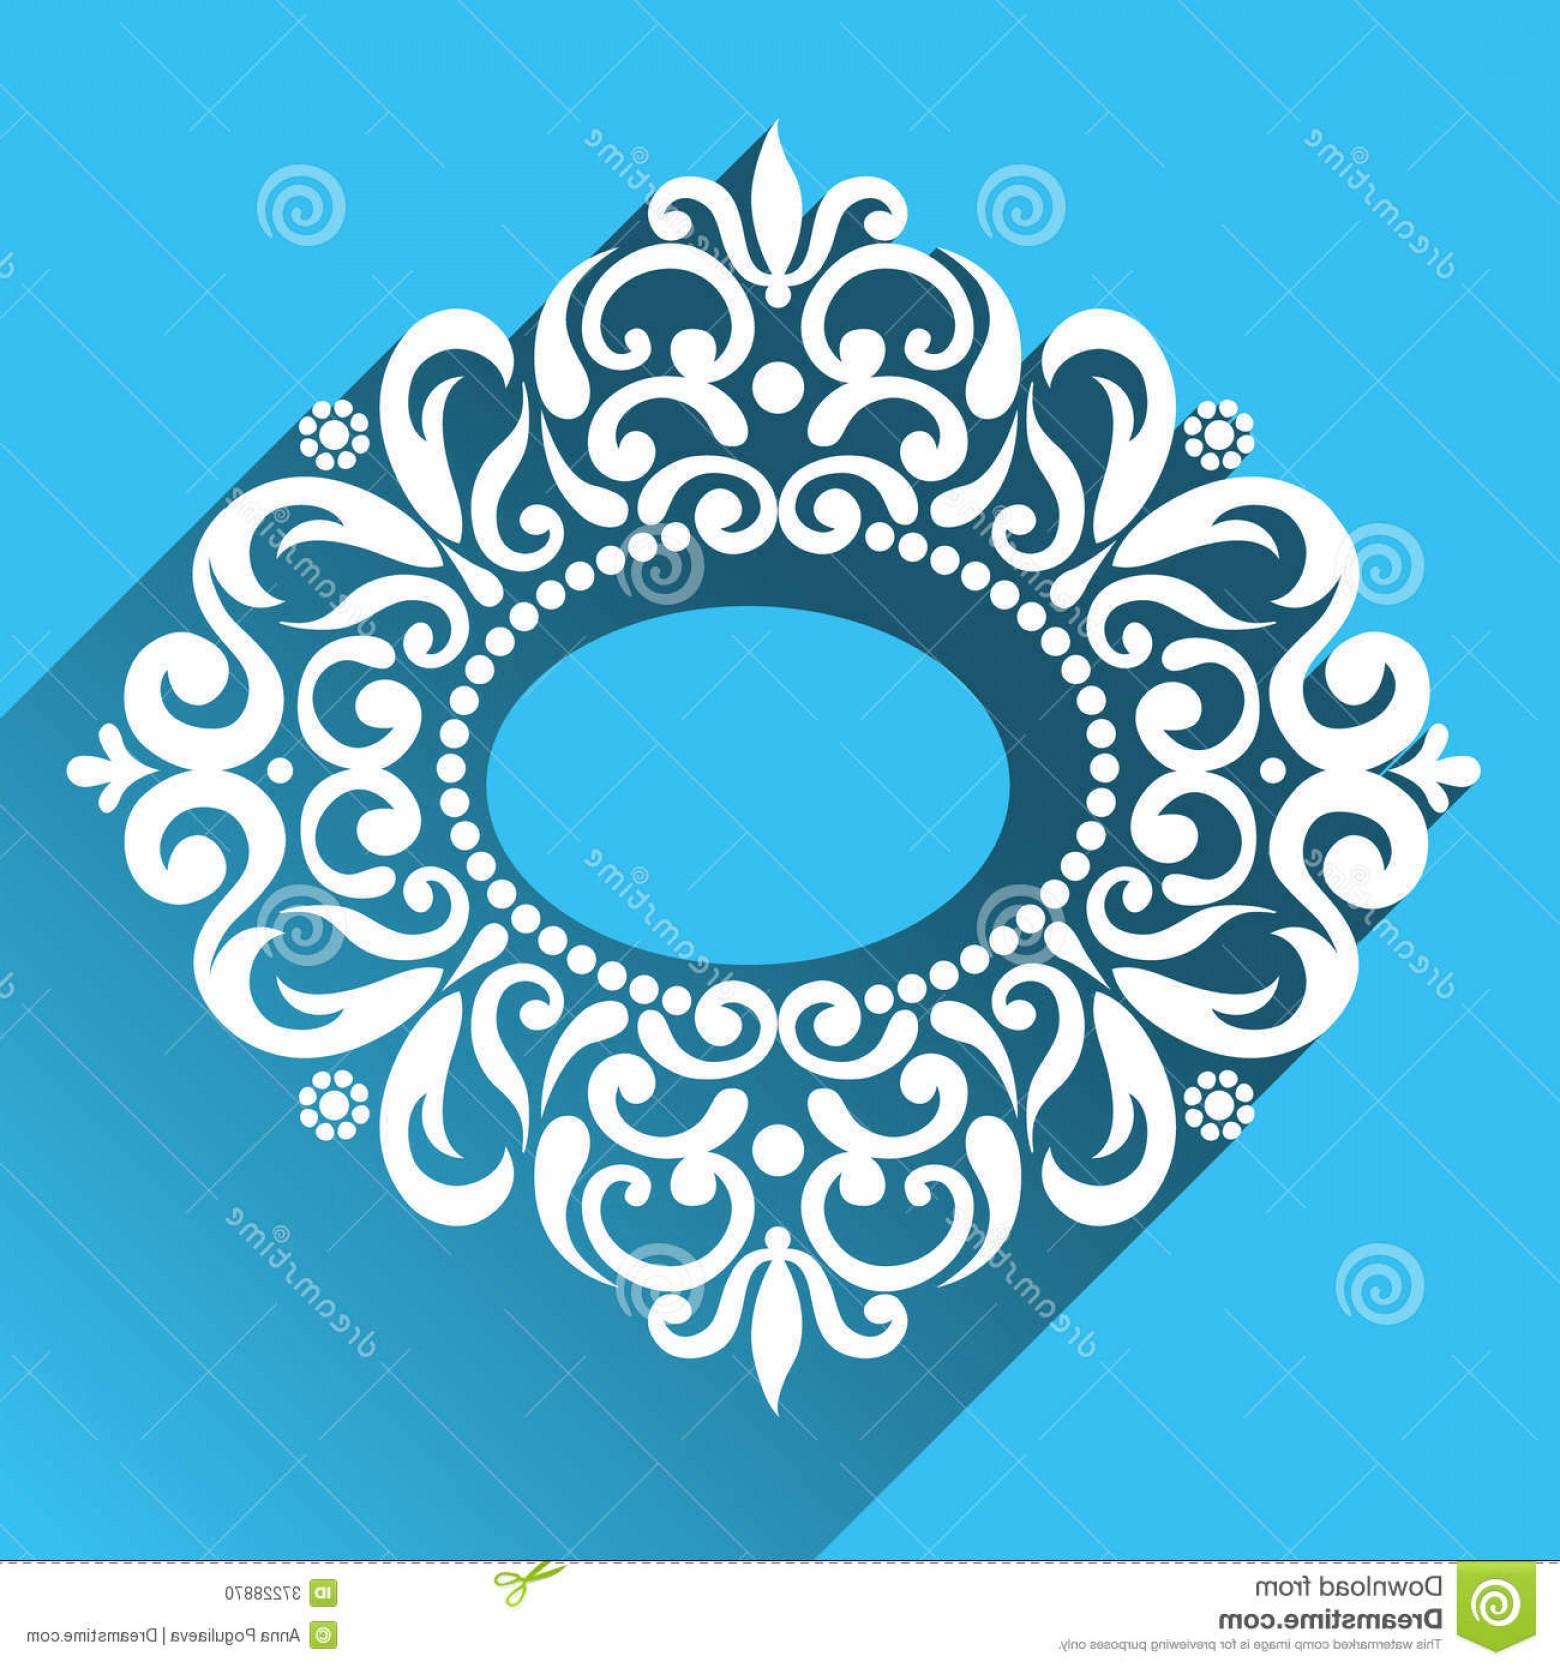 Aqua Victorian Vectors: Stock Photo Vector Victorian Ornamental Frame Flat Design Style Ornate Element Toolkit Designer Can Be Used Decorating Image